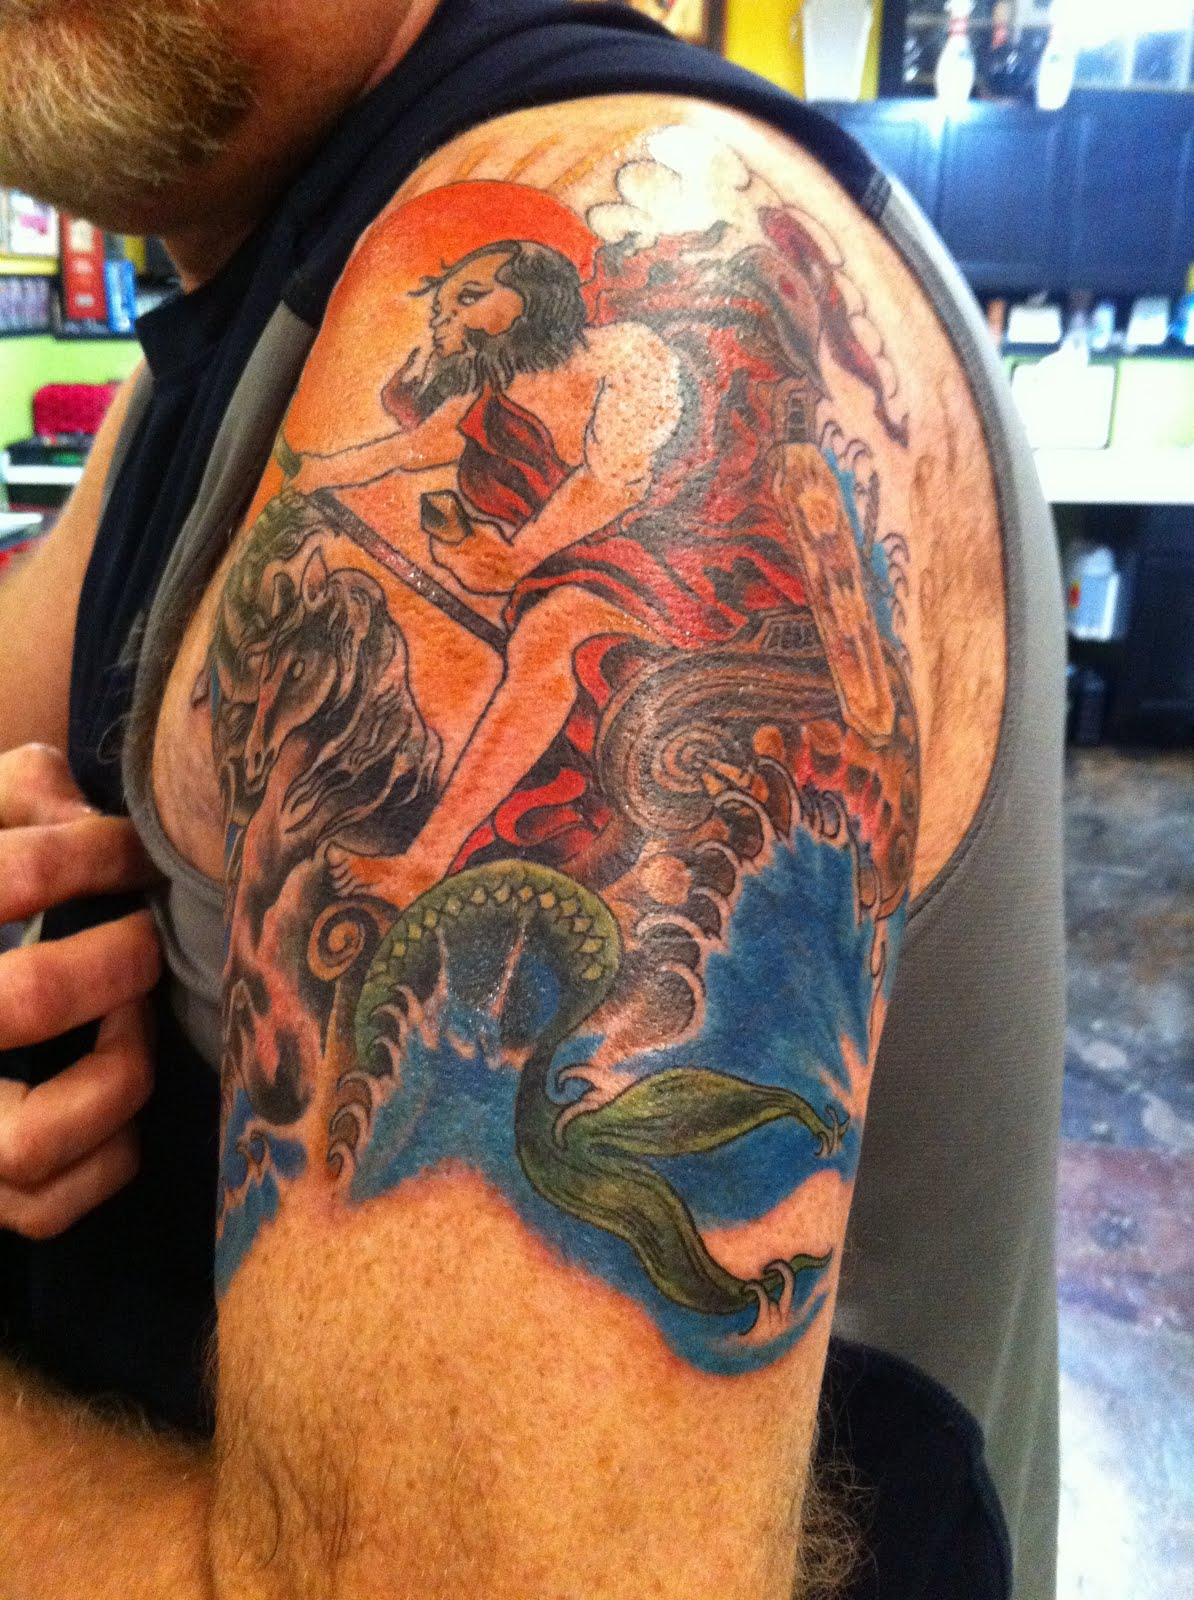 Miss Kitty...Tattoos, Art and Happenings: Chuck's ...